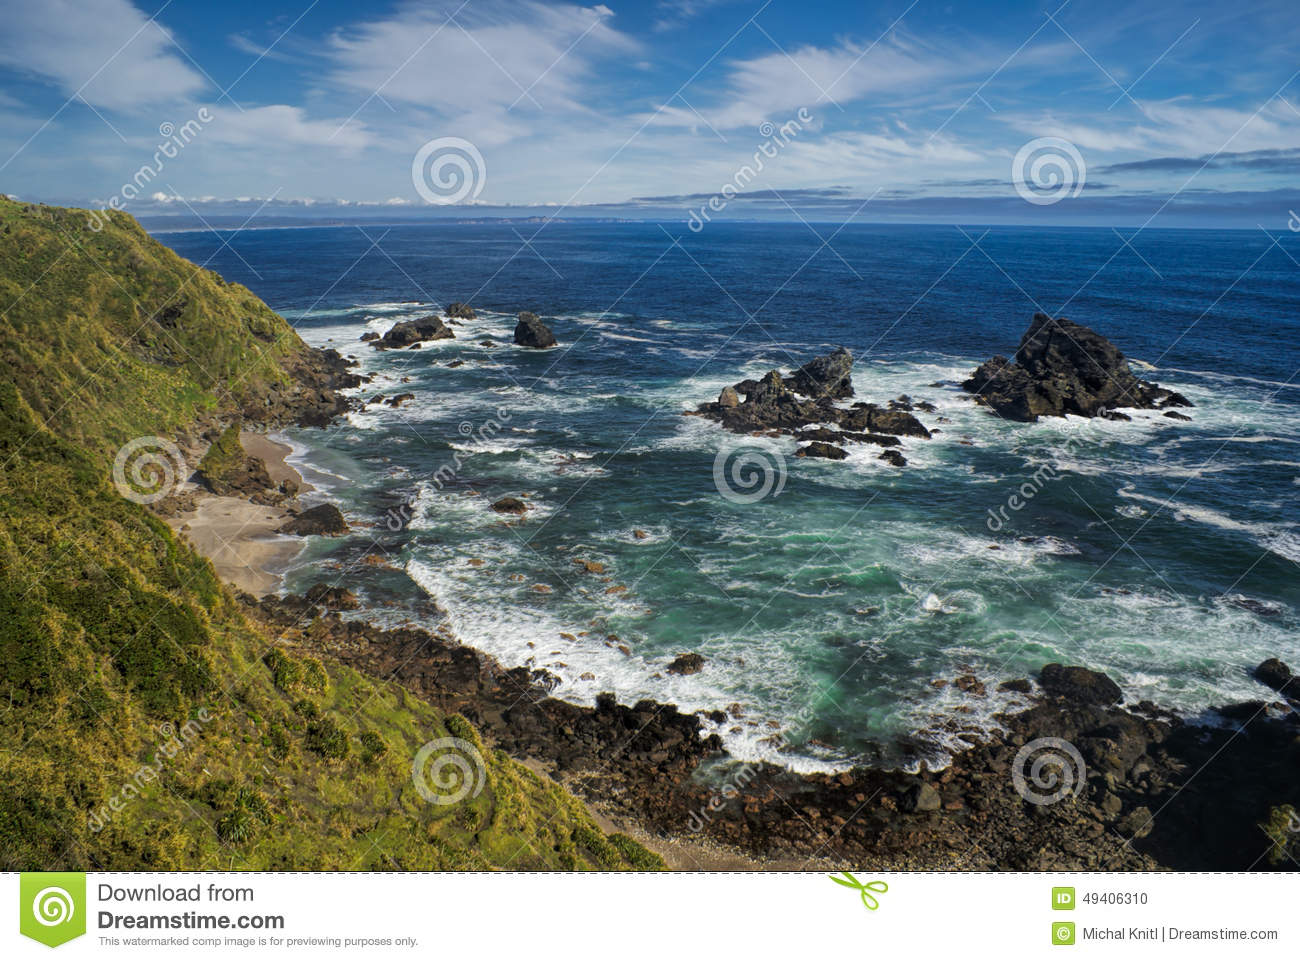 Download Parque Nacional Chiloe stockfoto. Bild von amerika, ozean - 49406310